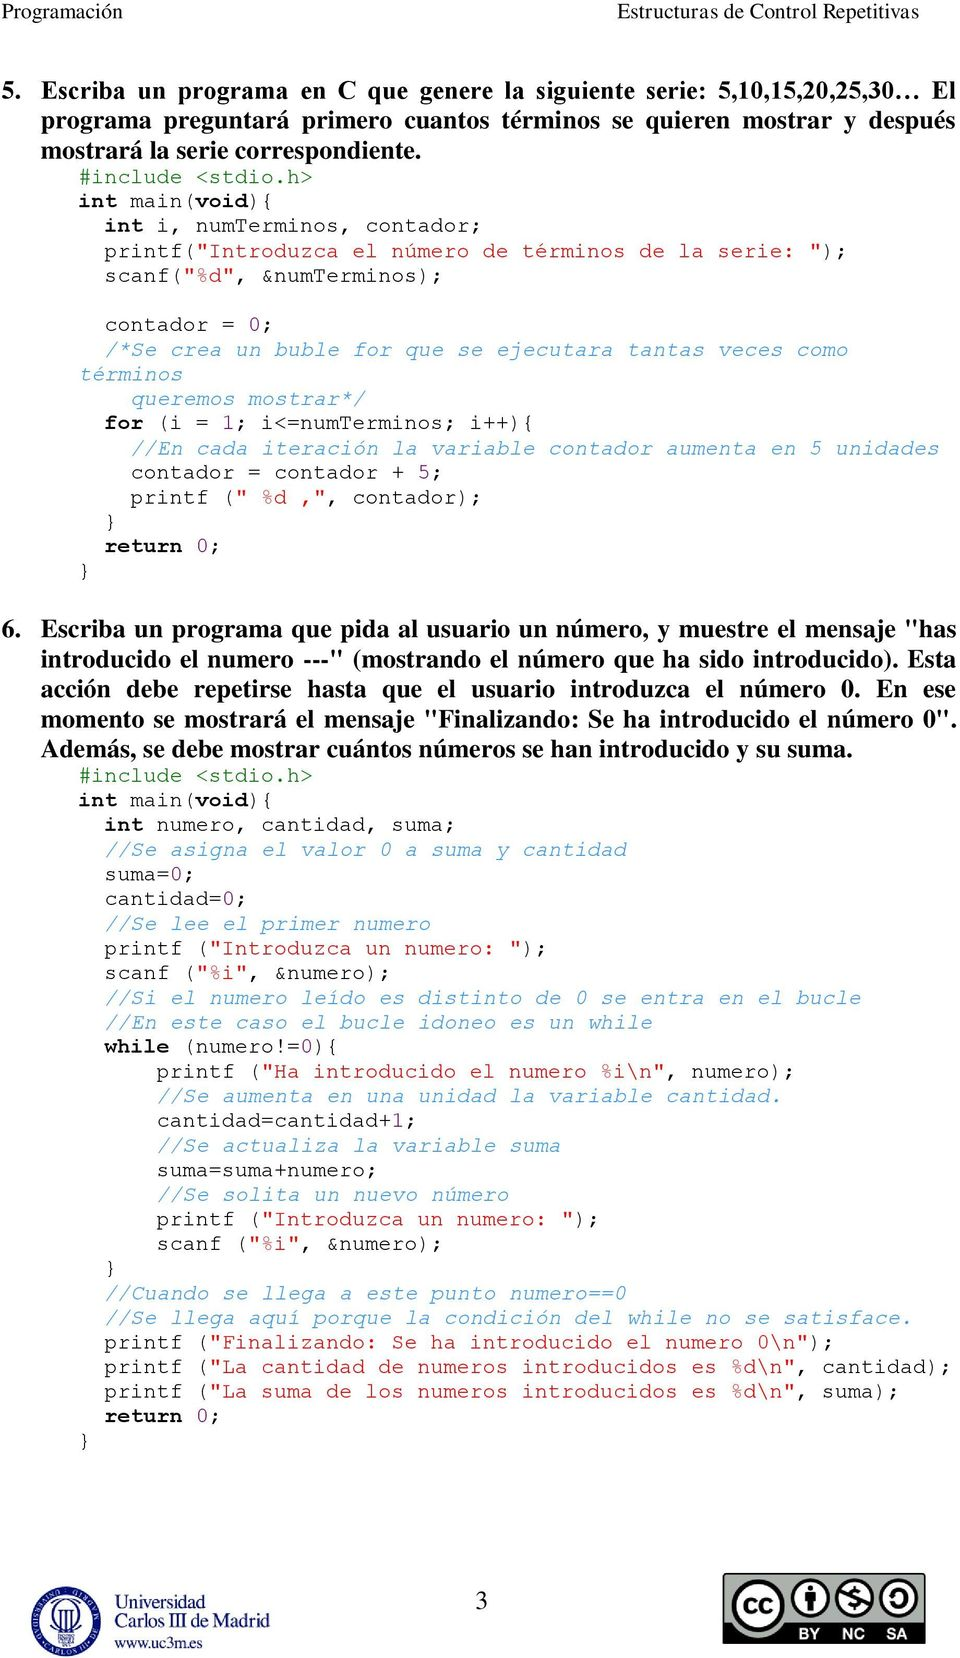 "queremos mostrar*/ for (i = 1; i<=numterminos; i++){ //En cada iteración la variable contador aumenta en 5 unidades contador = contador + 5; printf ("" %d,"", contador); 6."